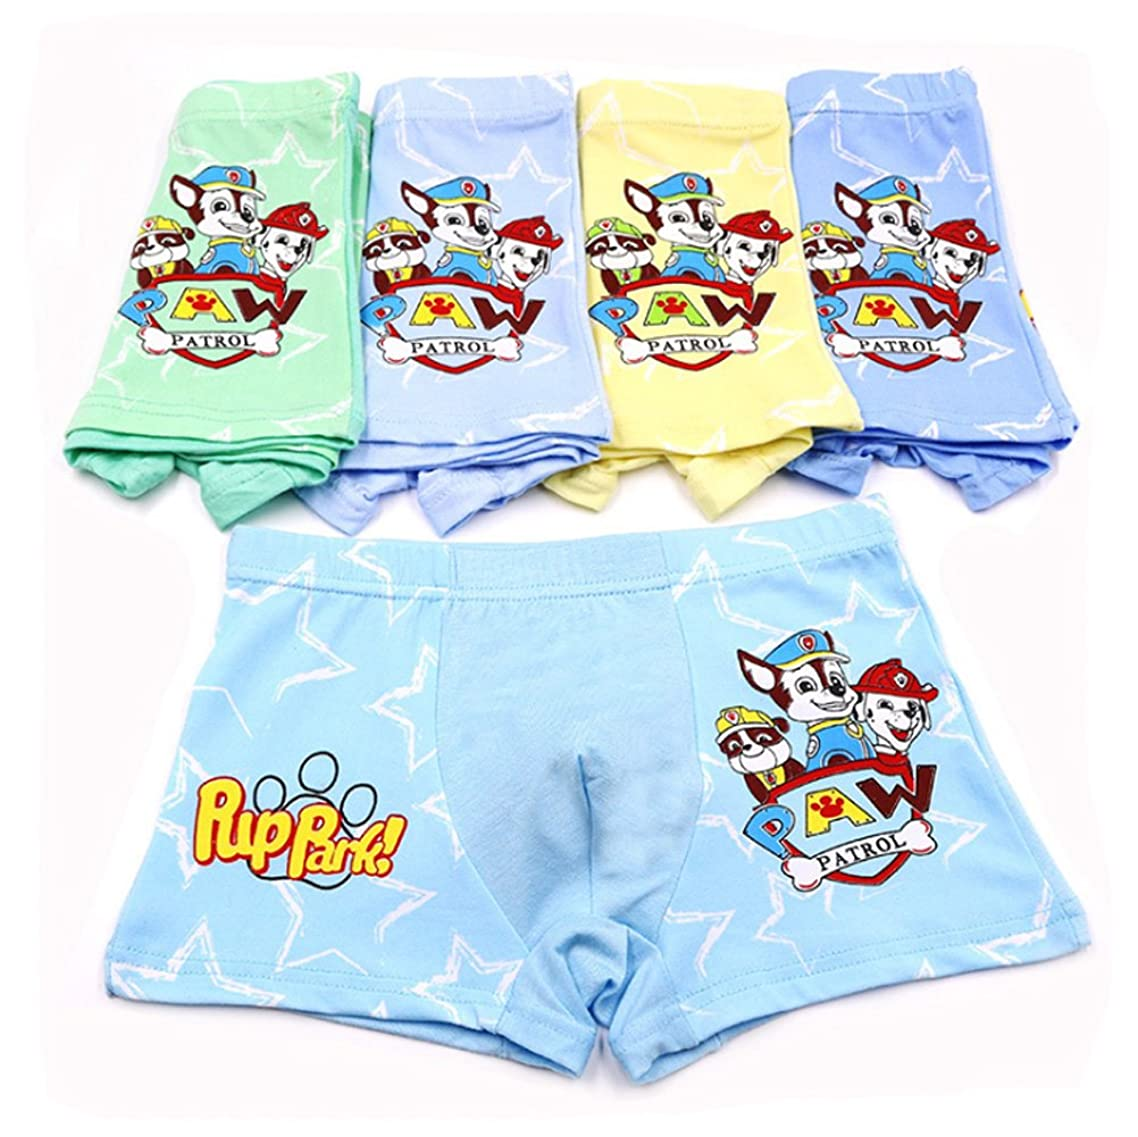 2-10 Years Boy's Character Underwear Paw Patrol Boxer Briefs 5 Multipack